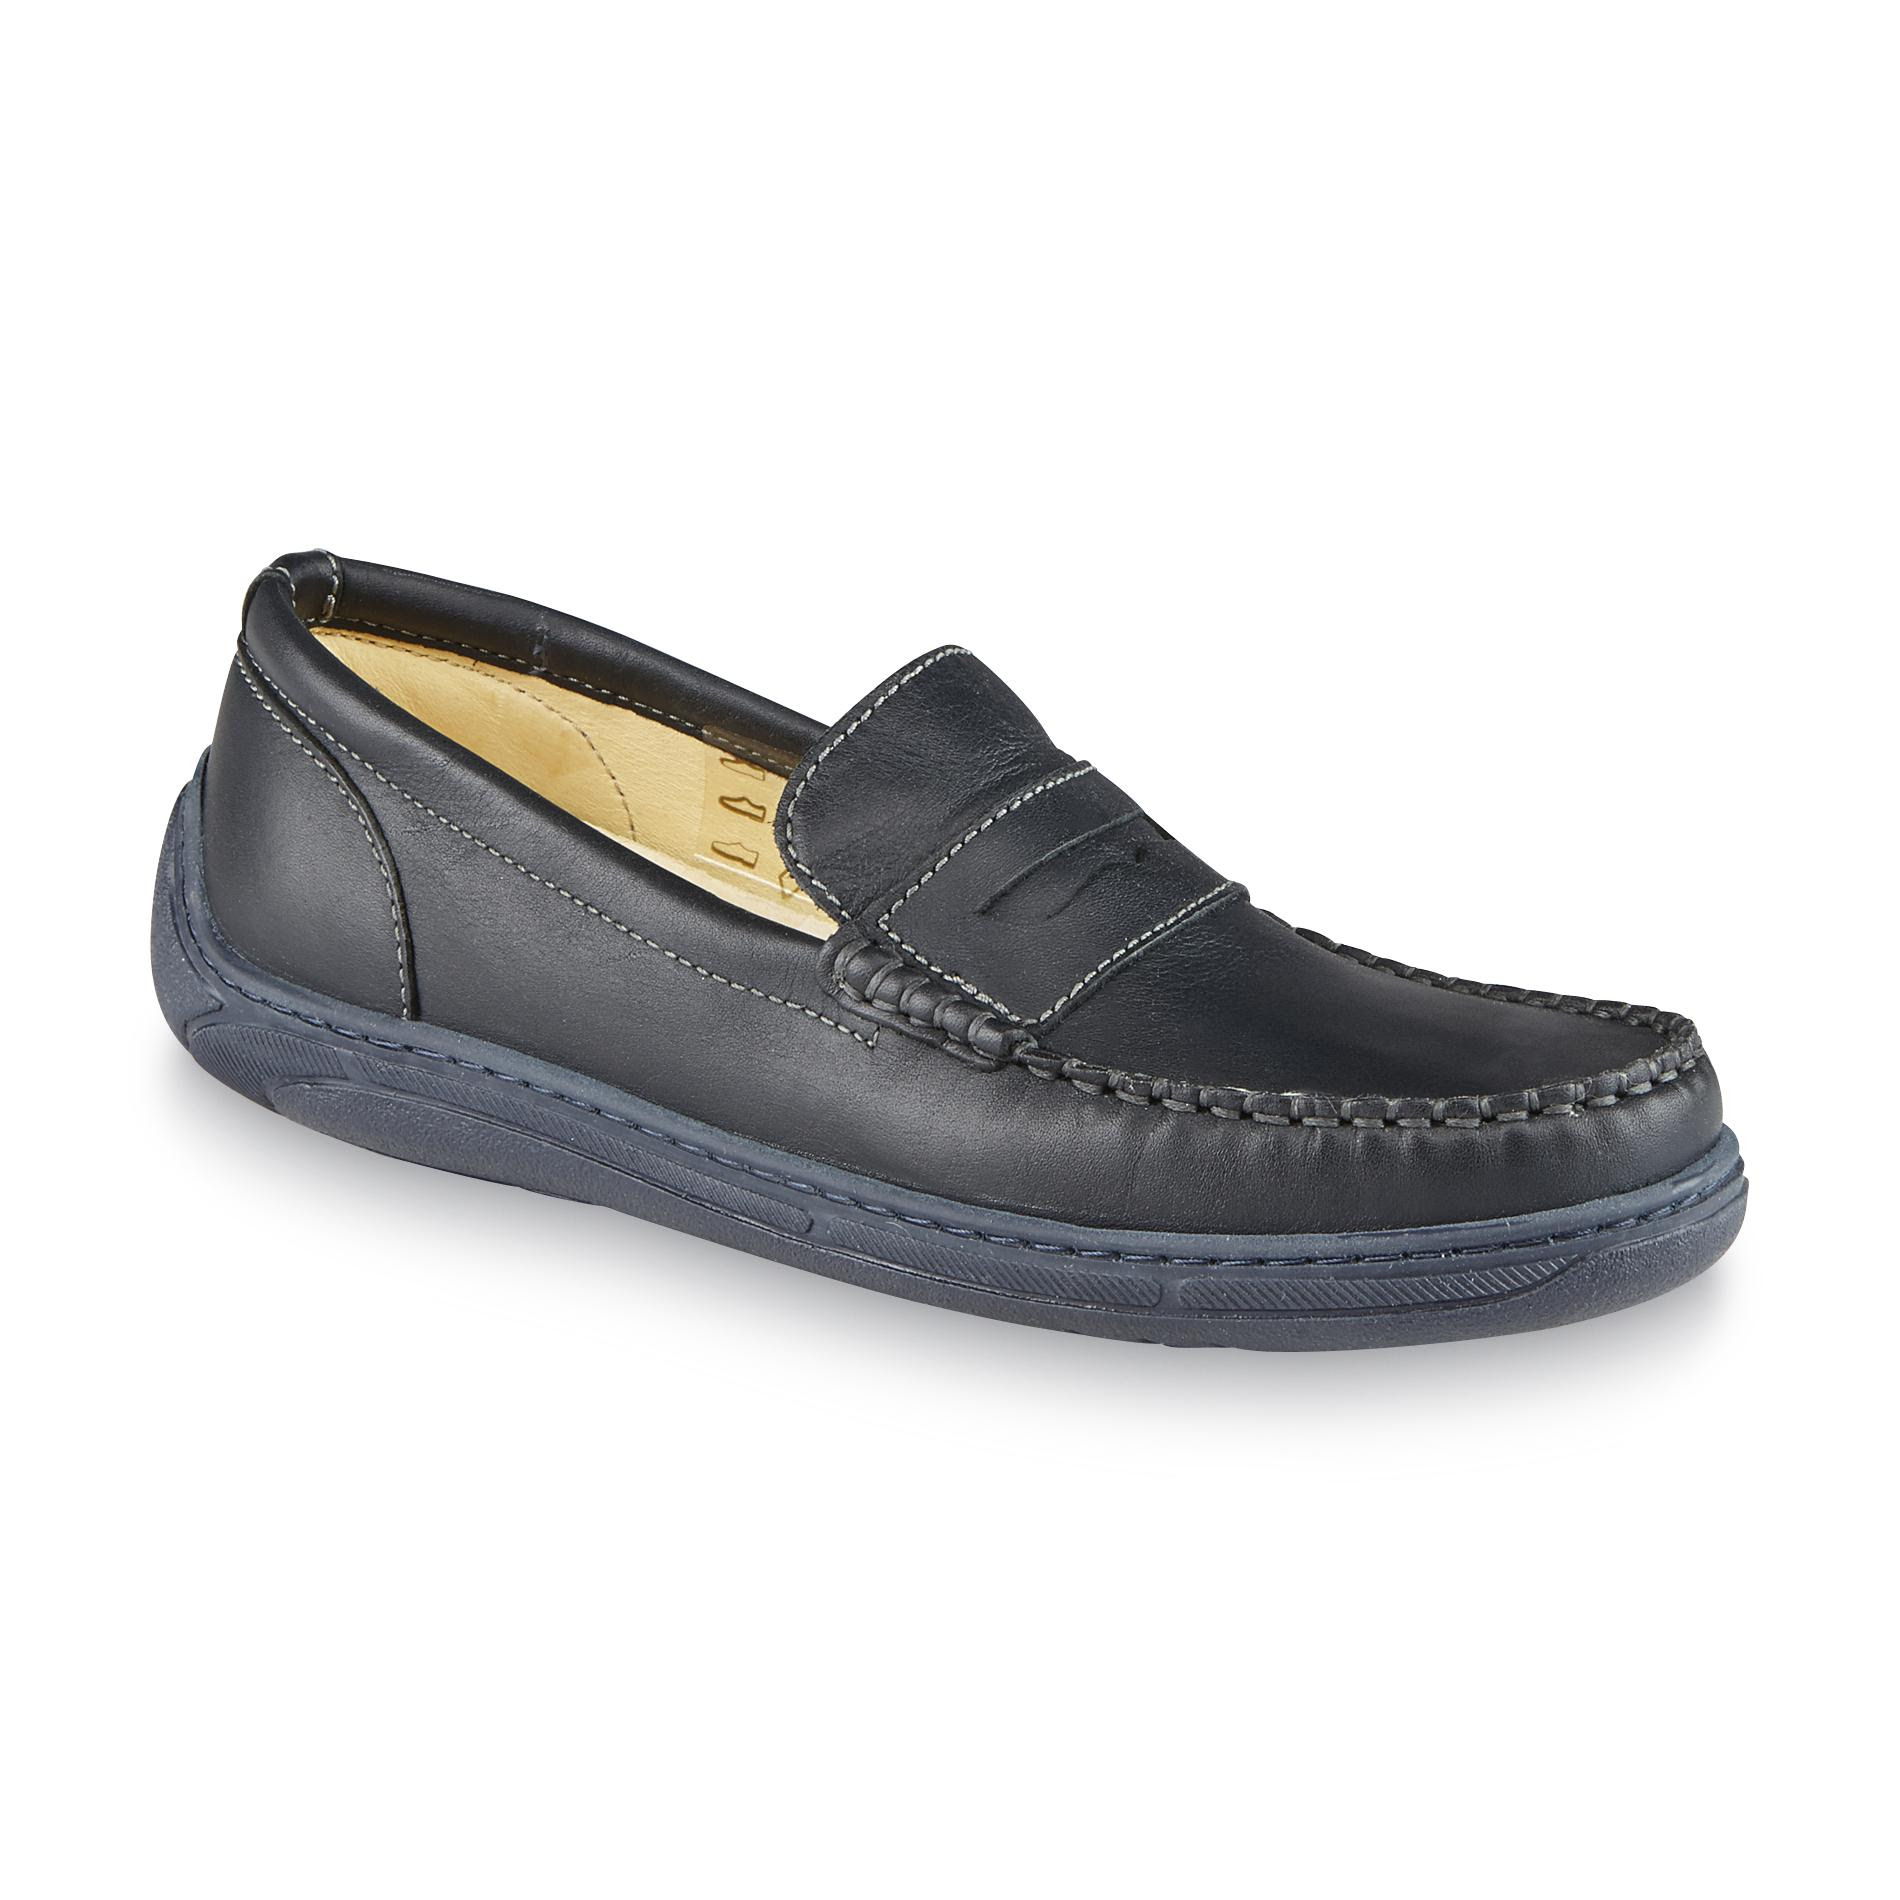 Primigi Boy's Choate Navy Penny Loafer